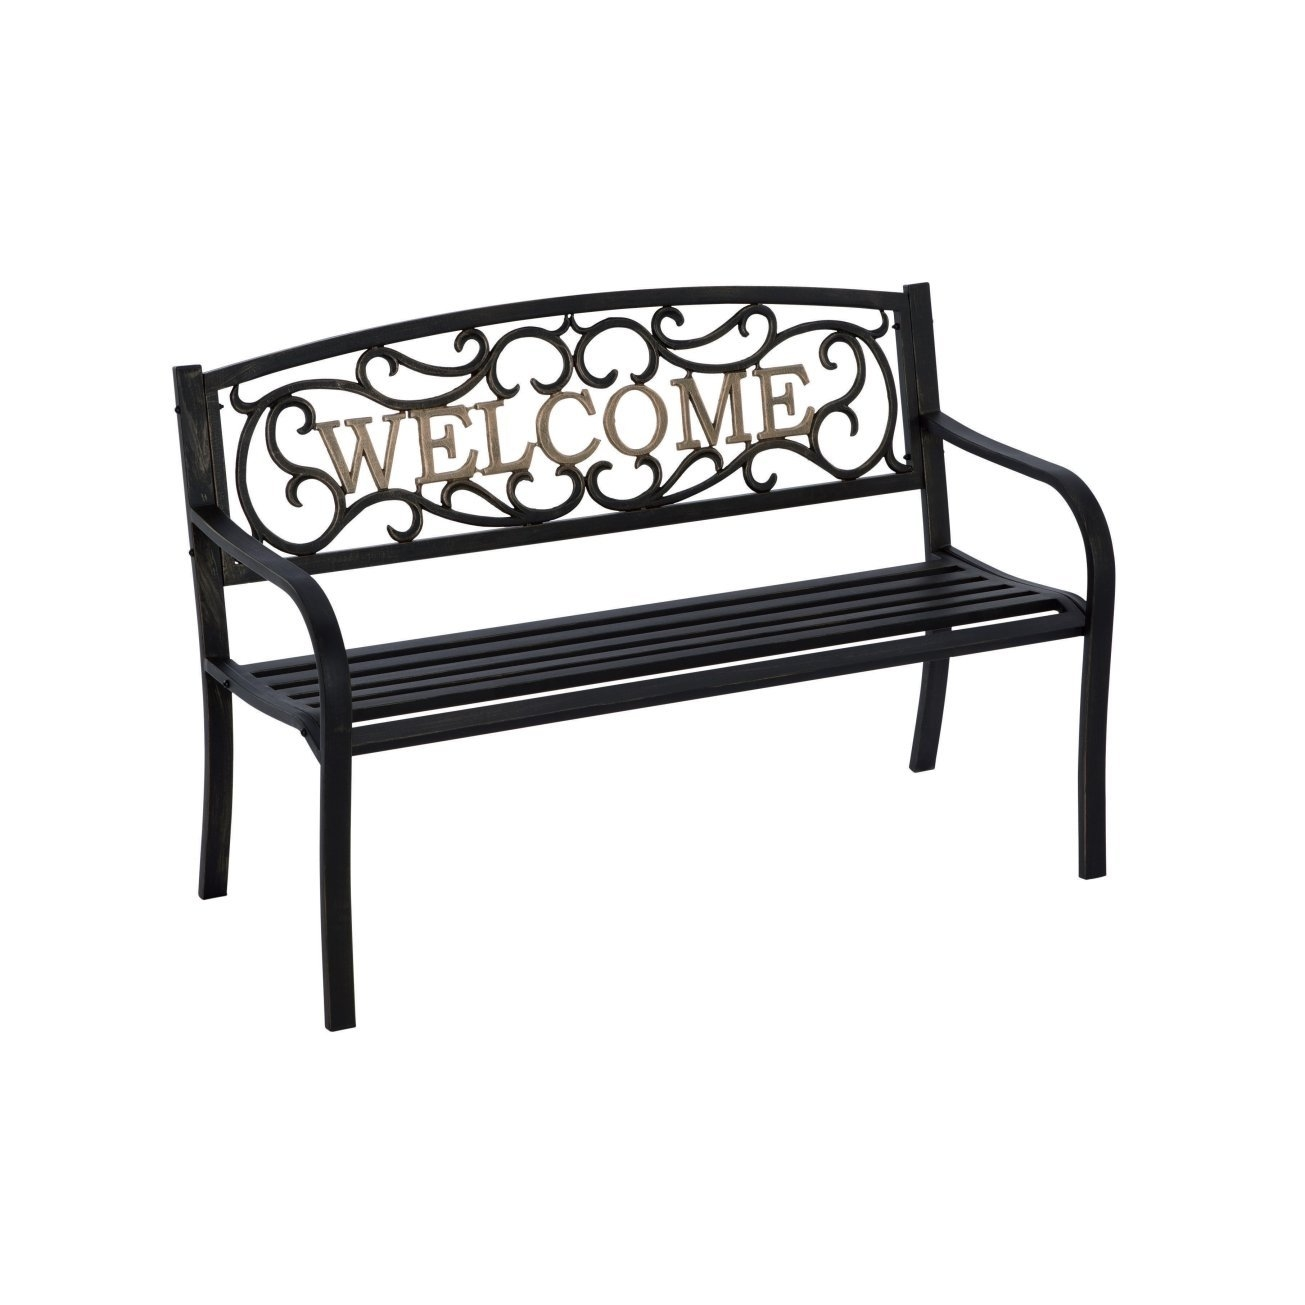 Admirable Cast Iron Welcome Park Bench Outdoor Patio Garden In Black Bronze Bralicious Painted Fabric Chair Ideas Braliciousco